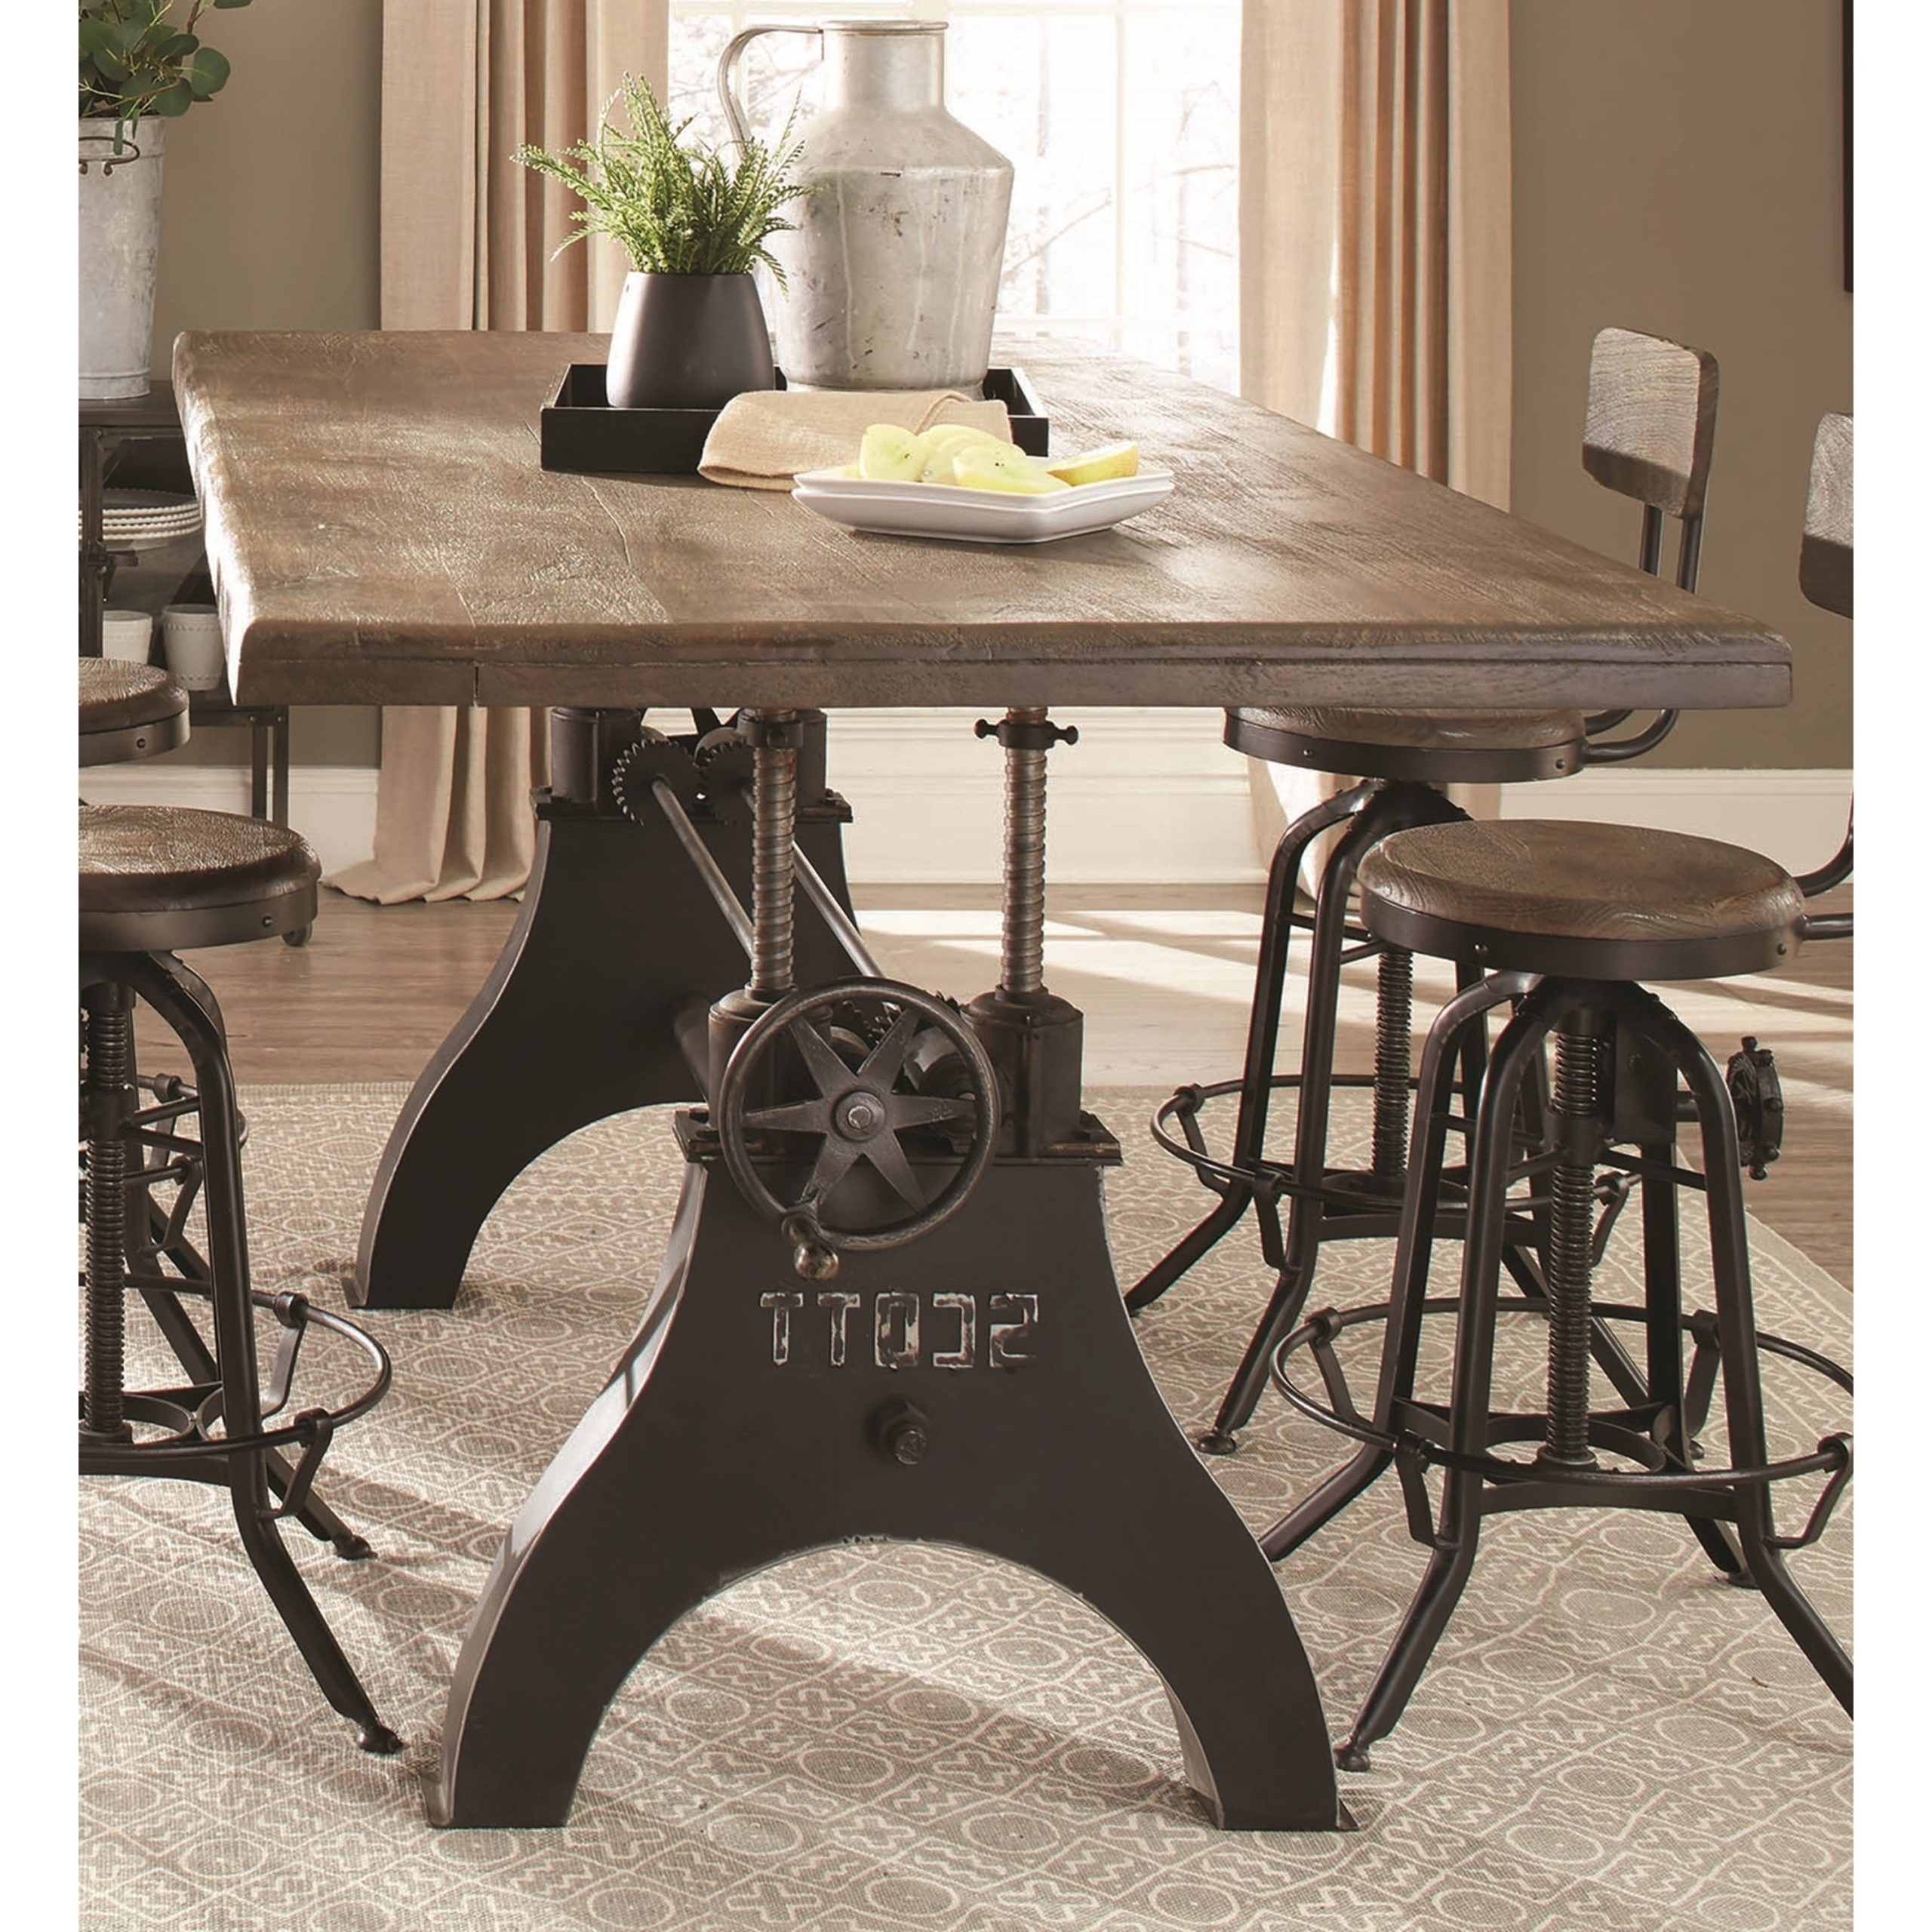 Retro Industrial Cast Iron Milling Machine Inspired Adjustable Height Dining Table Pertaining To Recent Iron Wood Dining Tables (View 14 of 30)